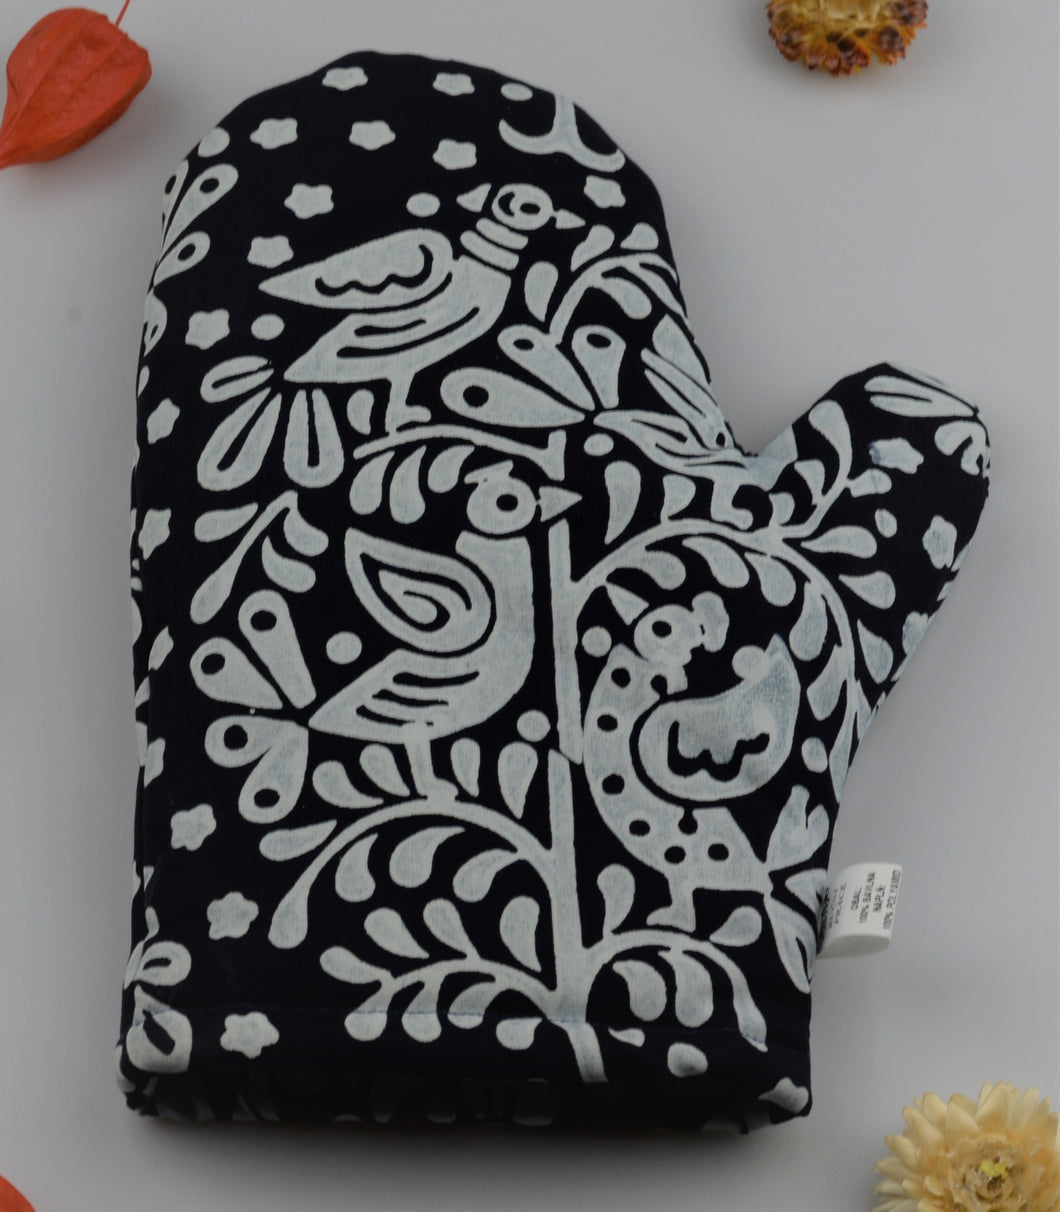 Oven glove from modrotisk